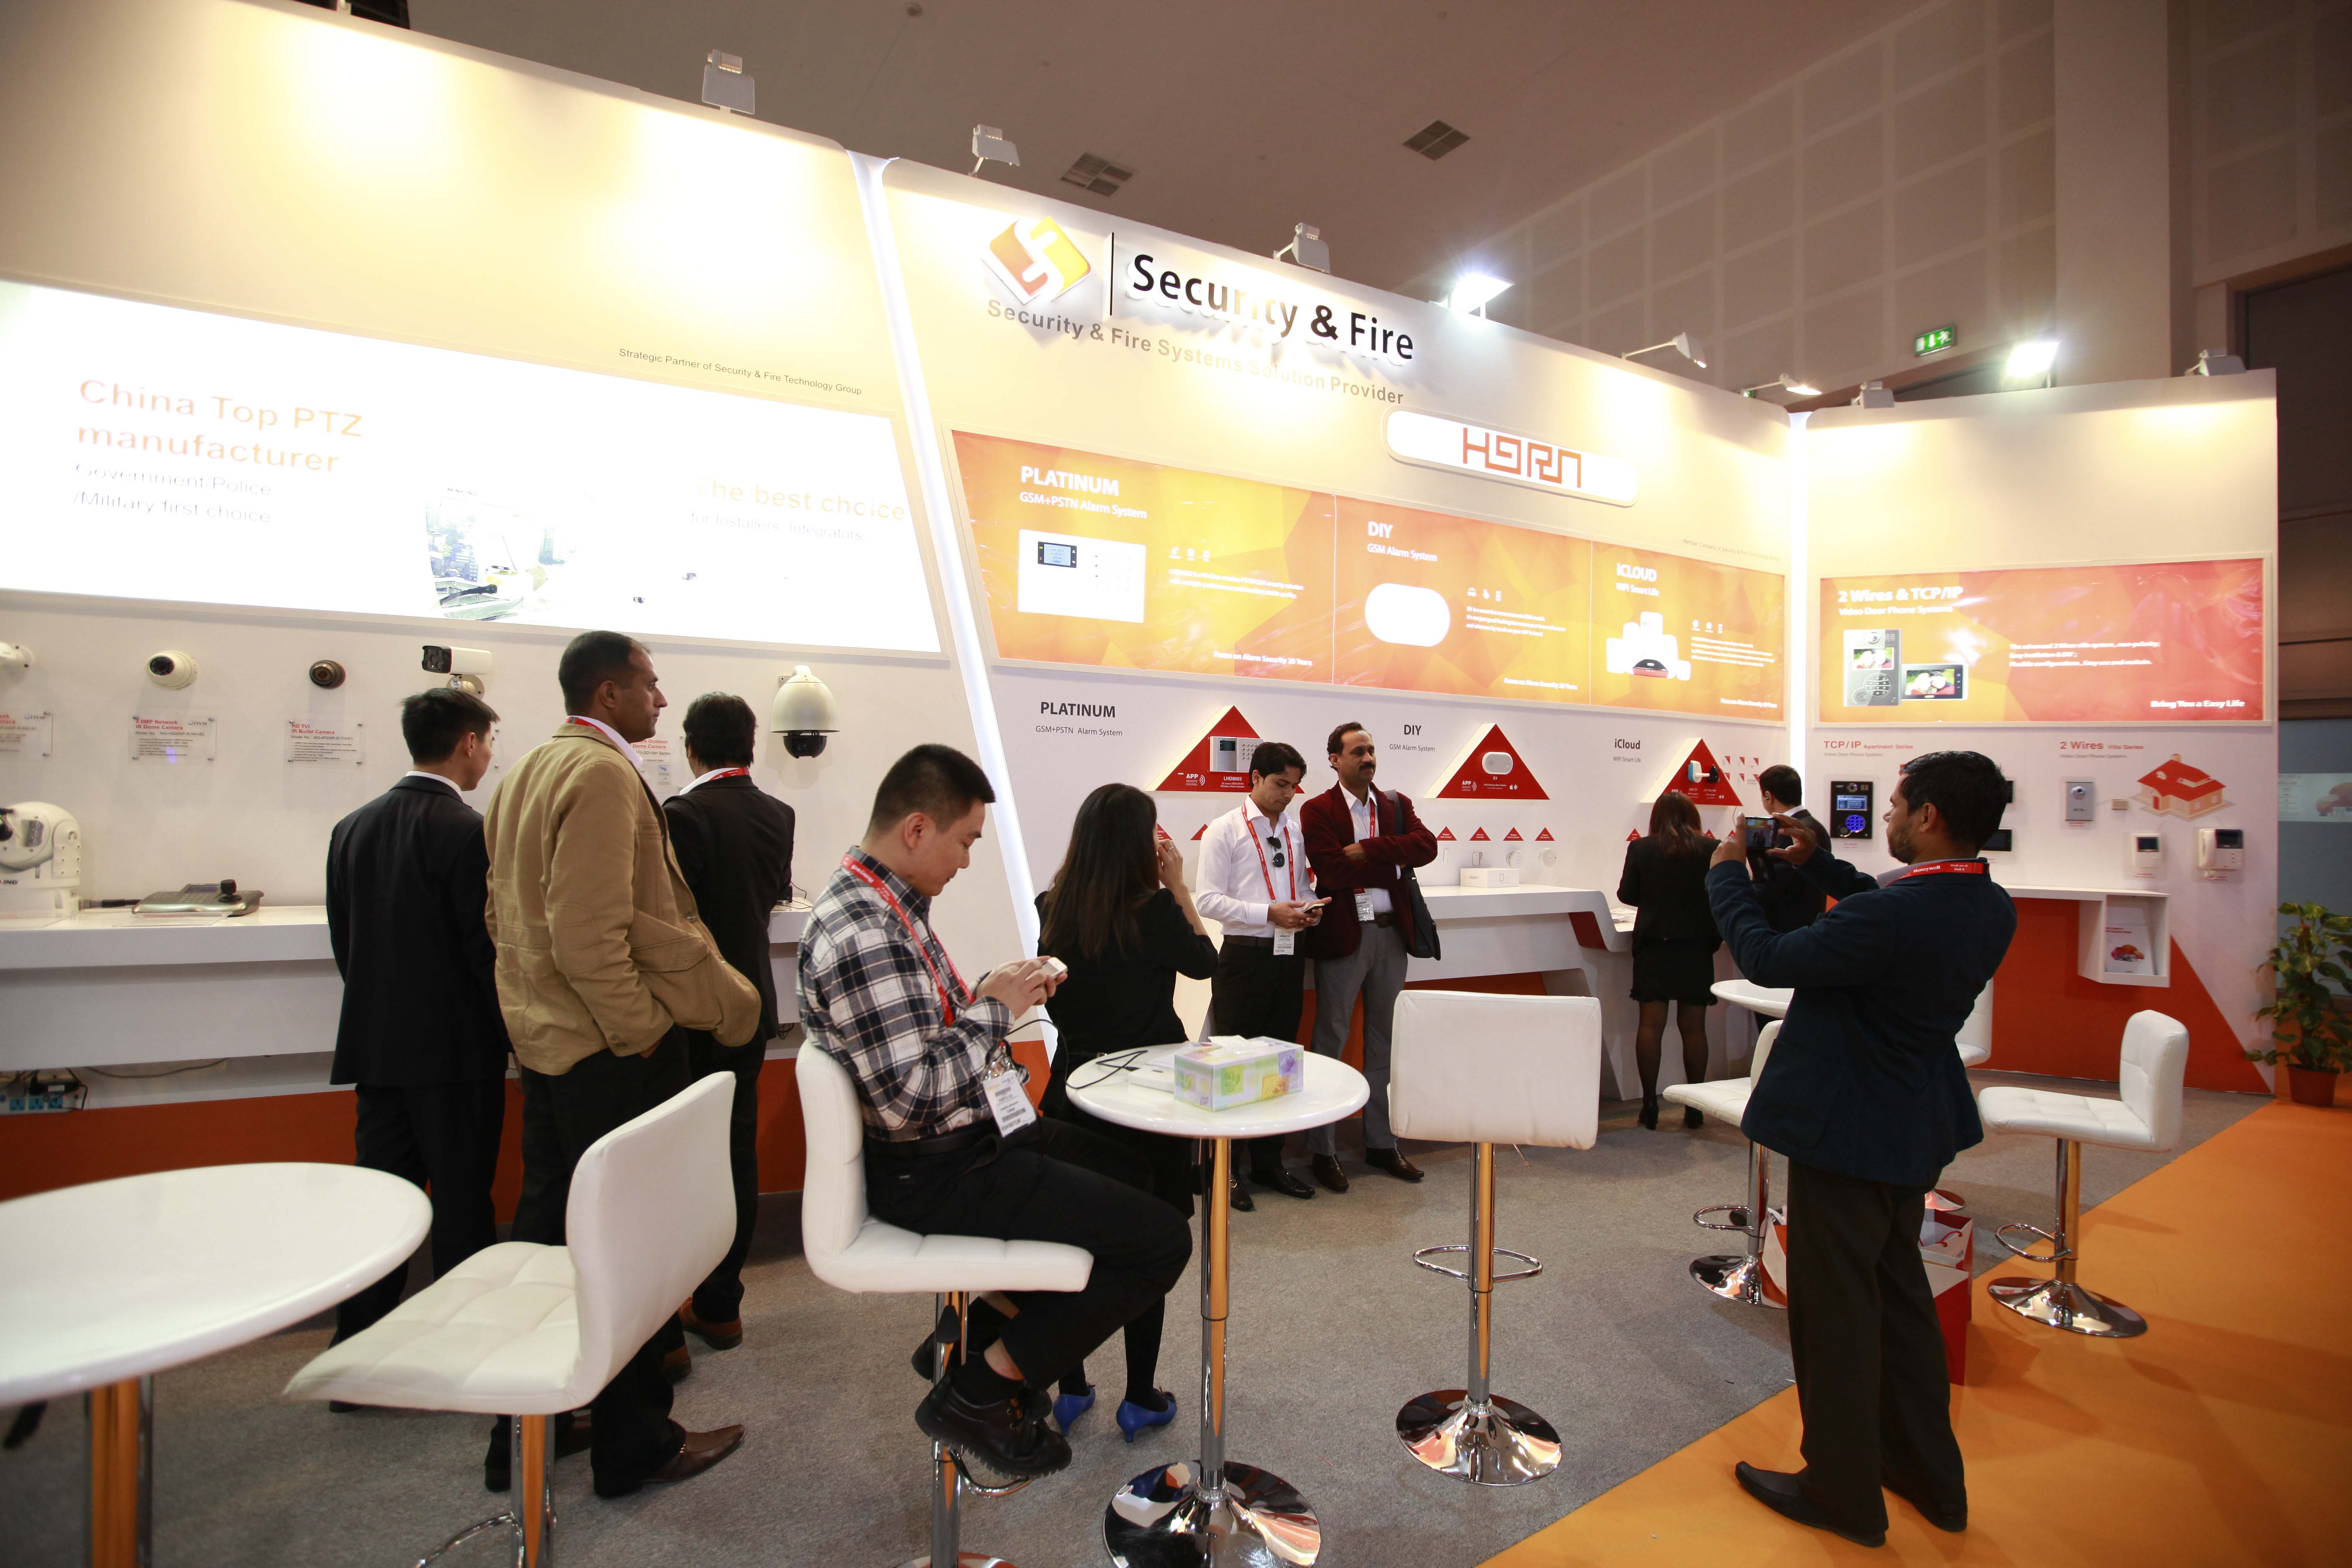 China Security & Fire puts on another spectacular show at Intersec Dubai 2015